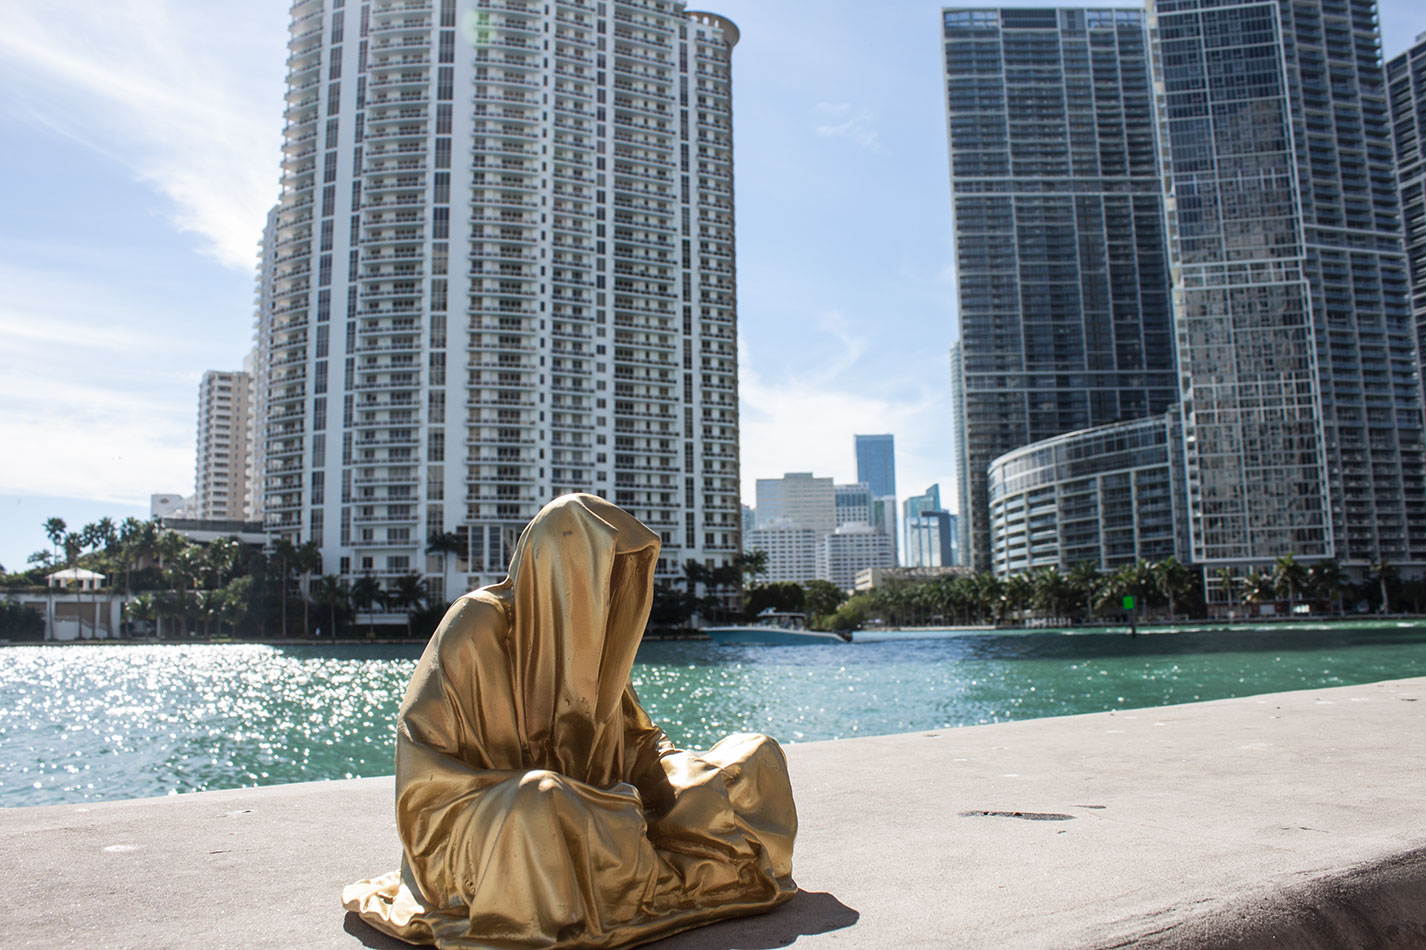 public-art-basel-miami-beach-fair-usa-florida-guardians-of-time-manfred-kili-kielnhofer-contemporary-fine-art-modern-arts-design-antiques-sculpture-6725